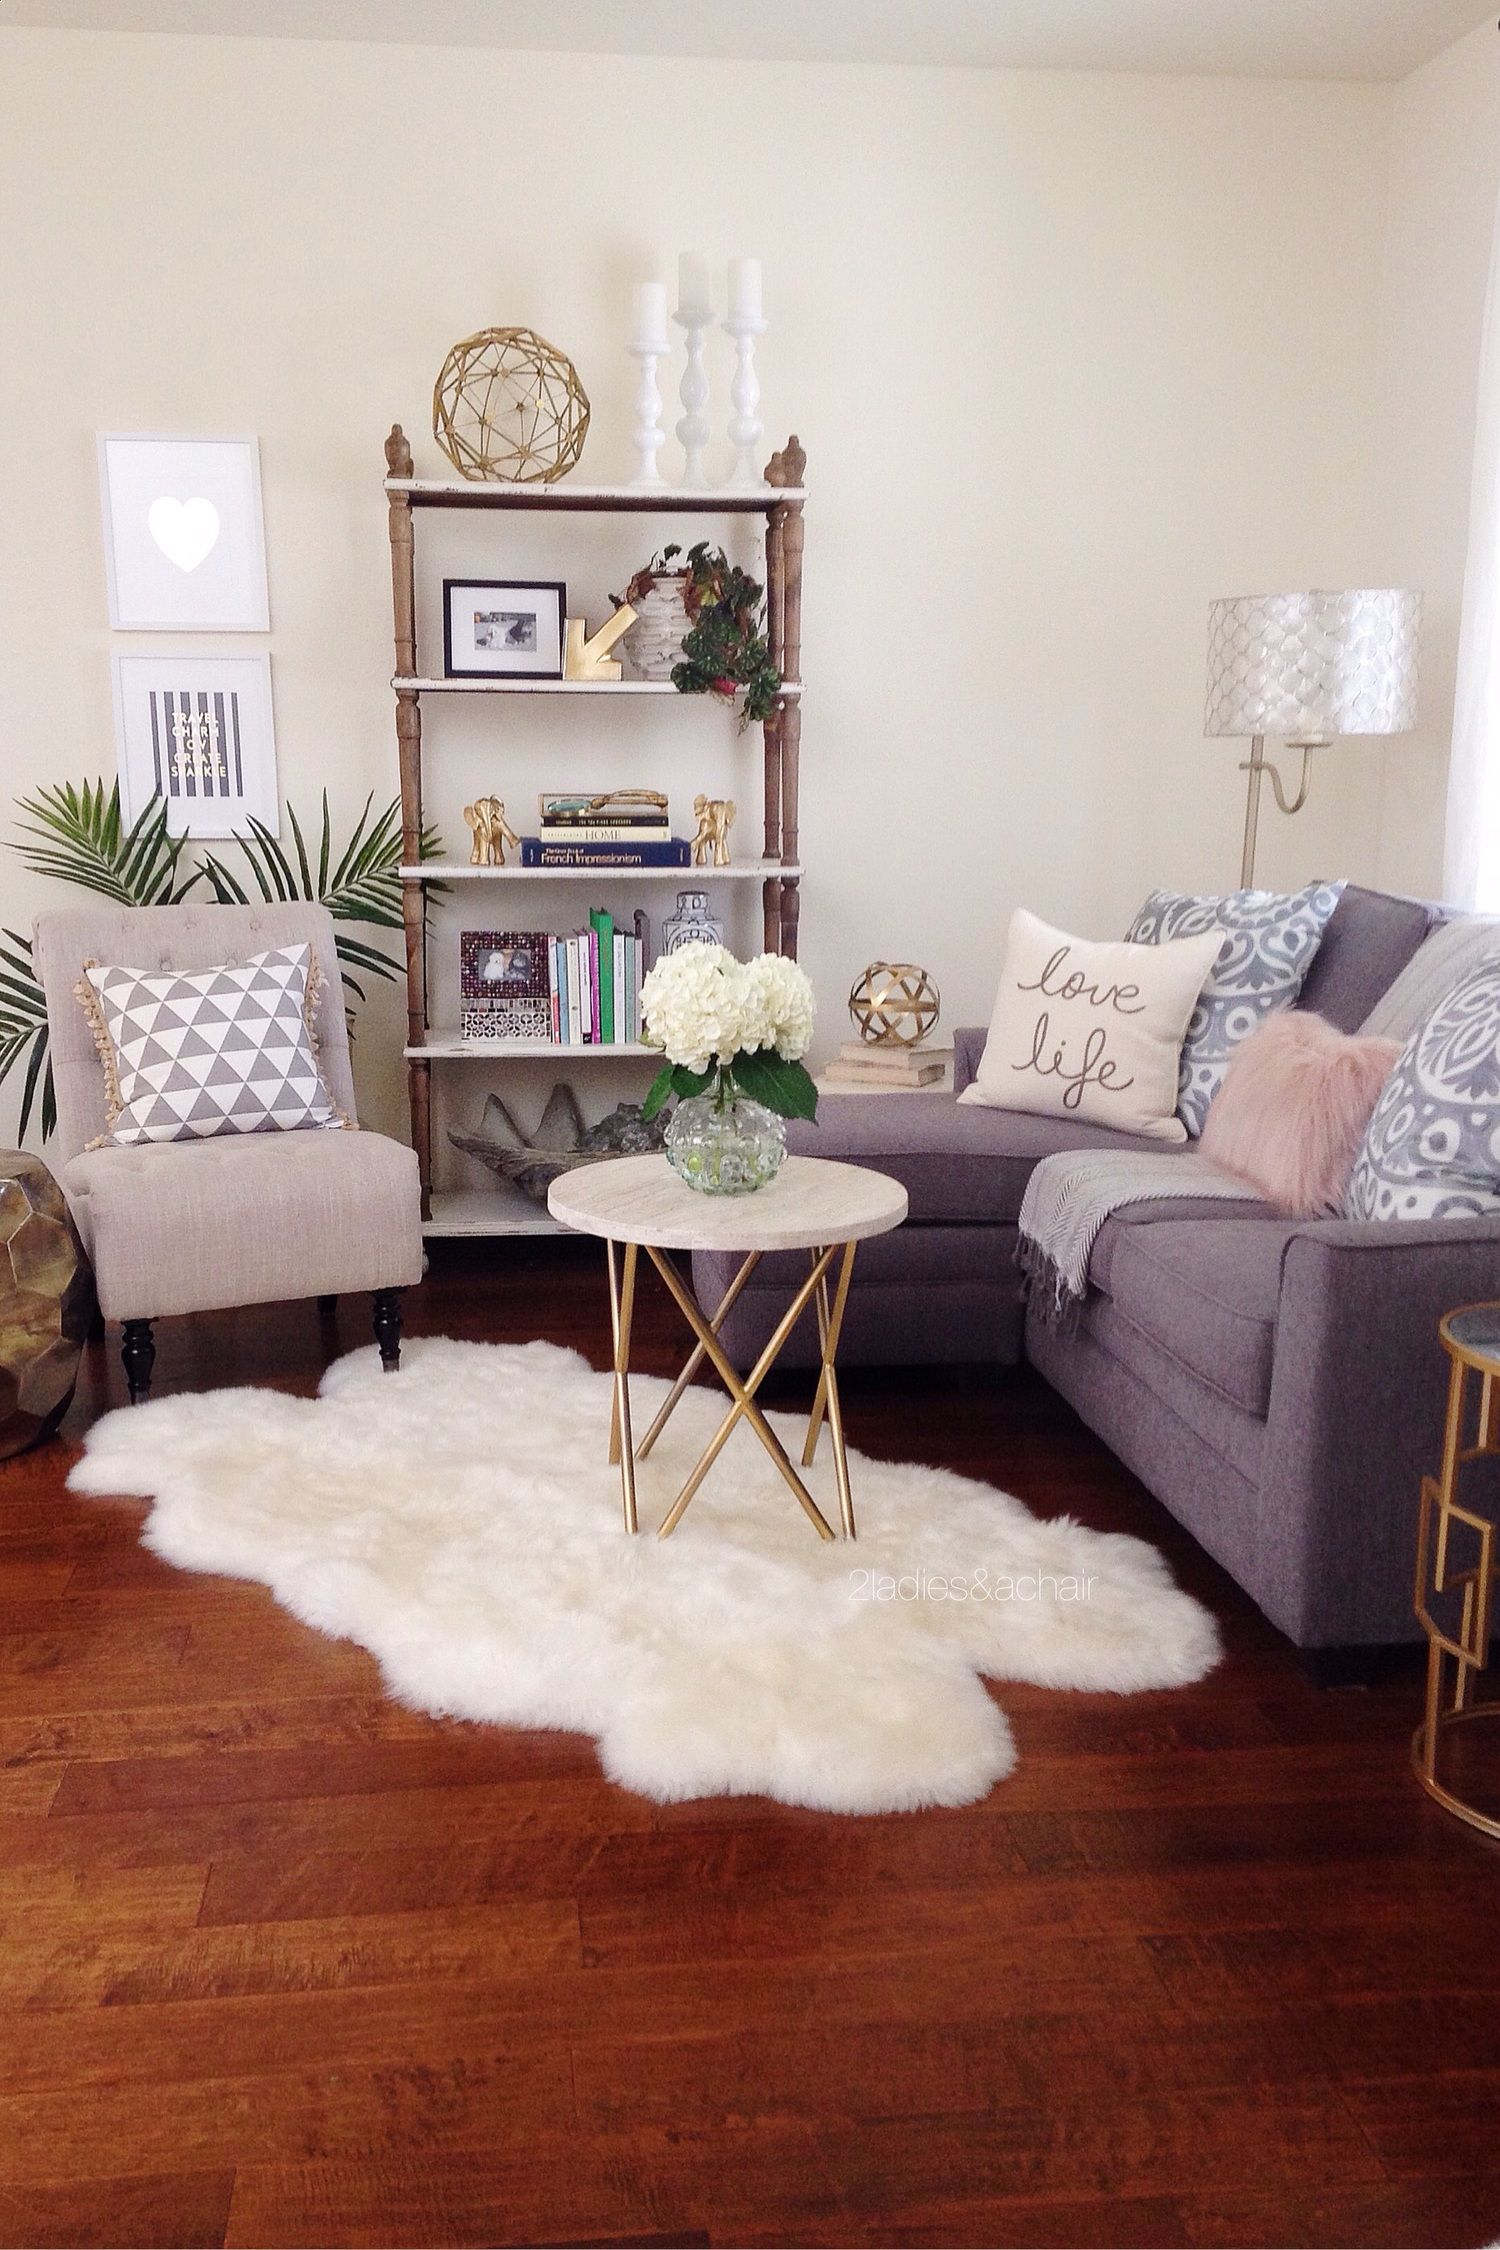 Jul 1 Obsession With Throw Pillows Apartment Living First